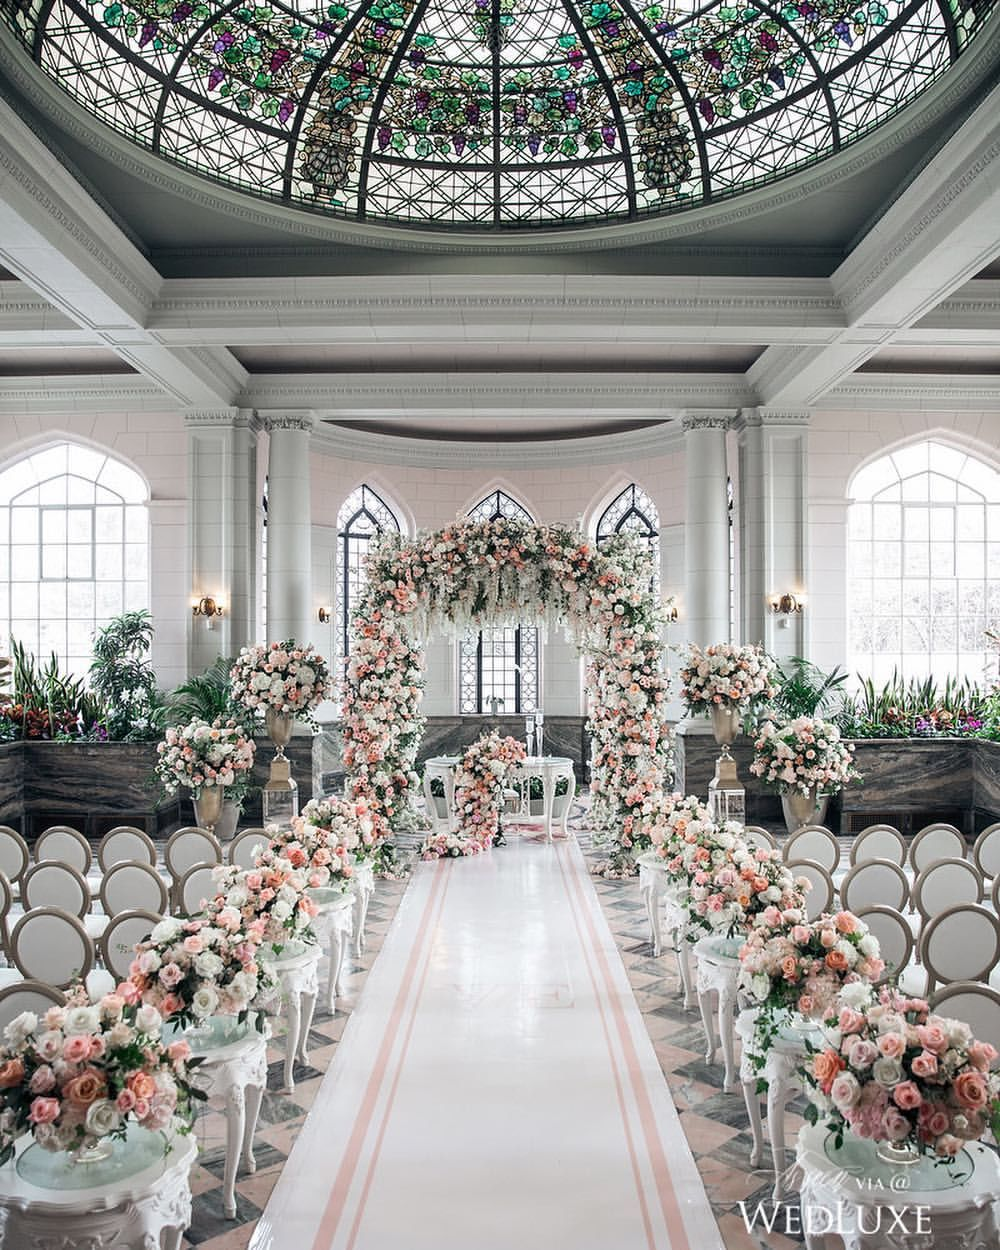 Altarpiece Wedding: Dreamy Floral Arch ️Stained Glass Ceiling ️Custom Aisle